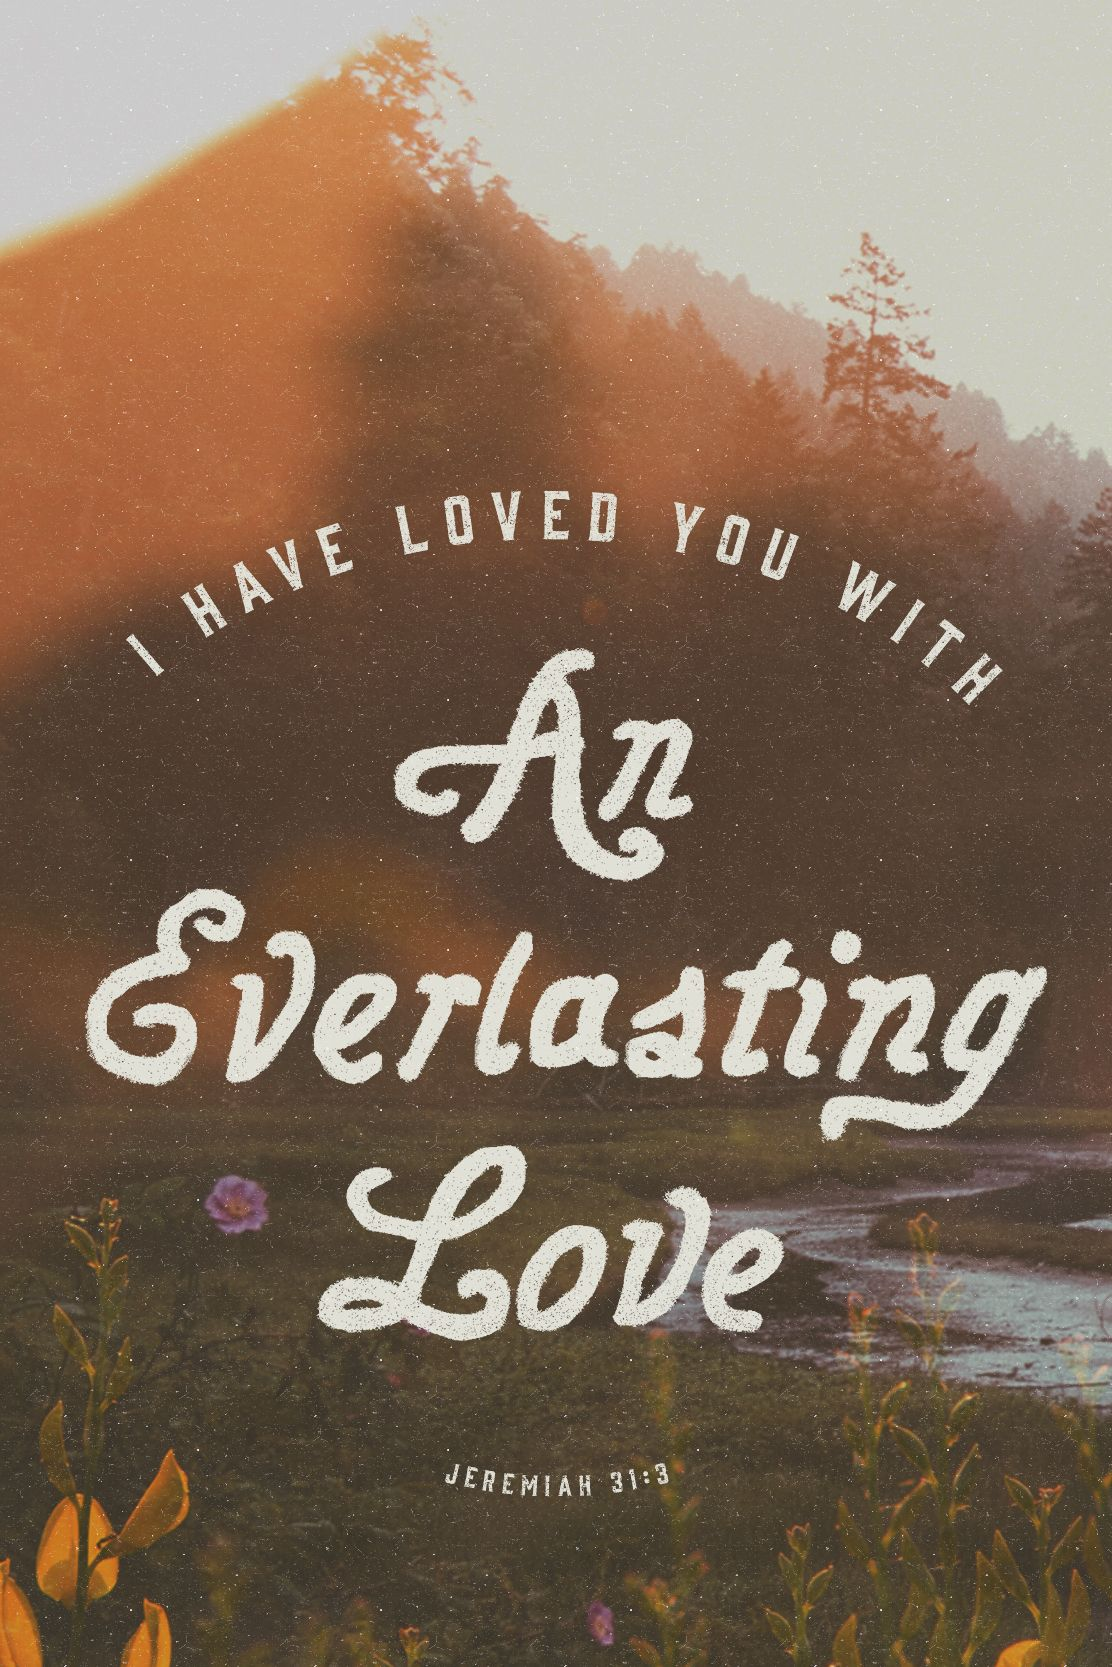 Everlasting Love Quotes I Have Loved You With An Everlasting Love Therefore I Have